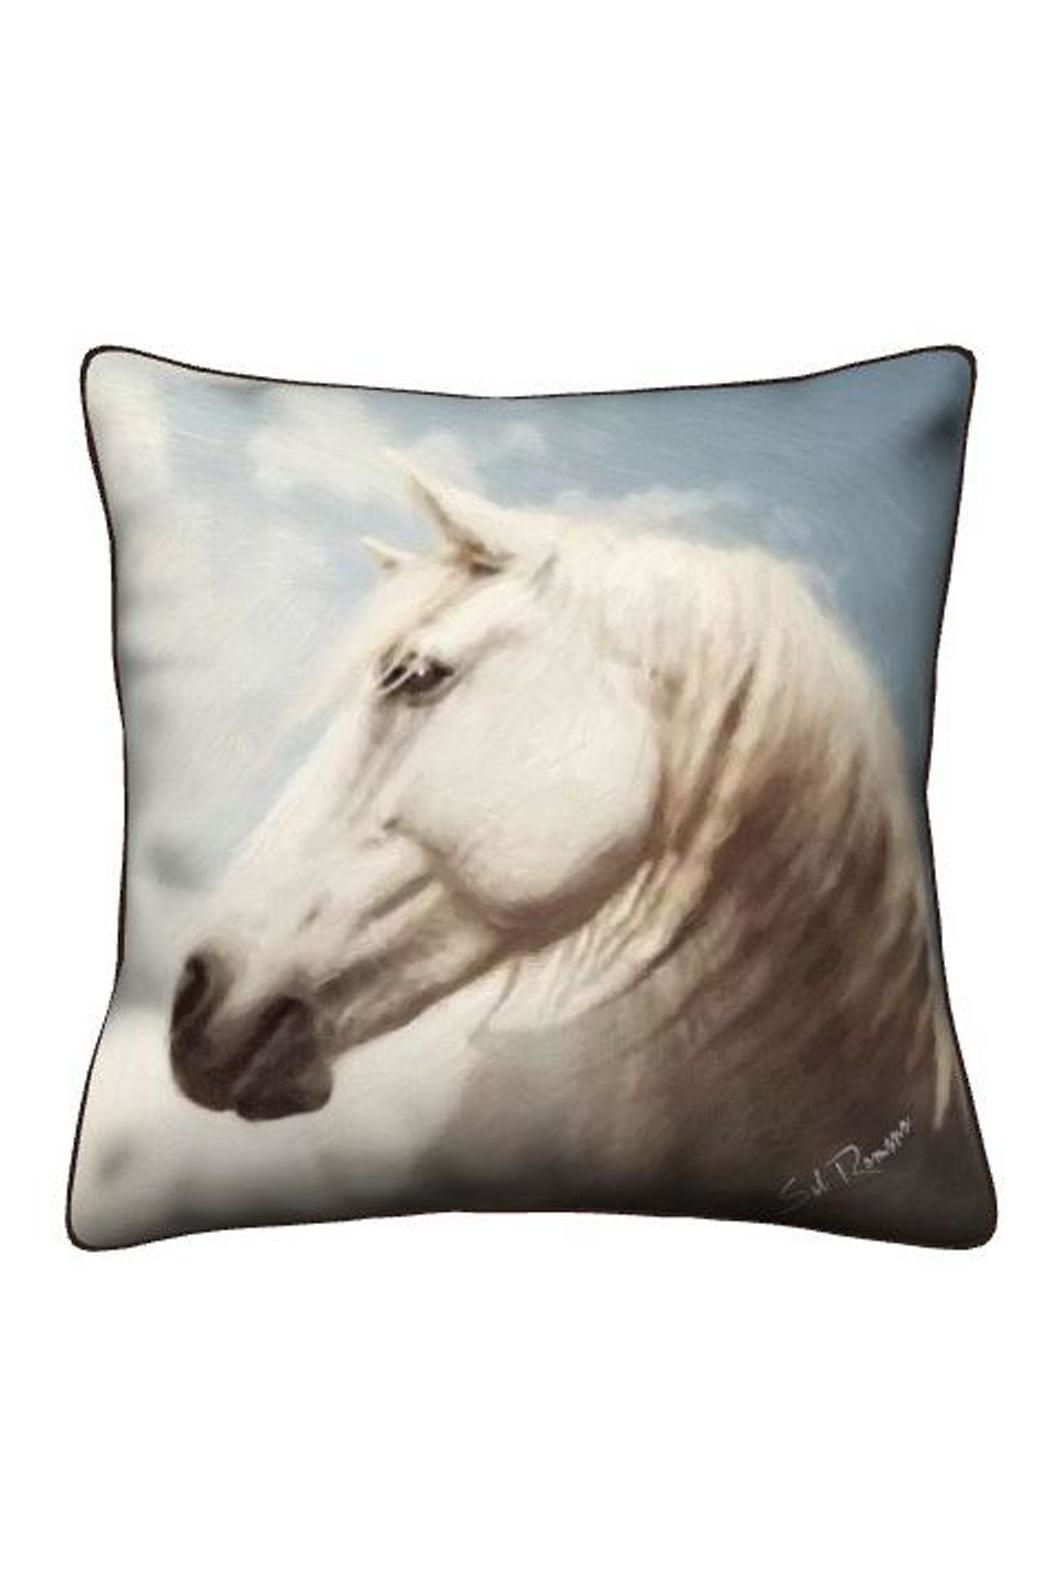 Patricia's Presents Arabian Horse Pillow - Main Image